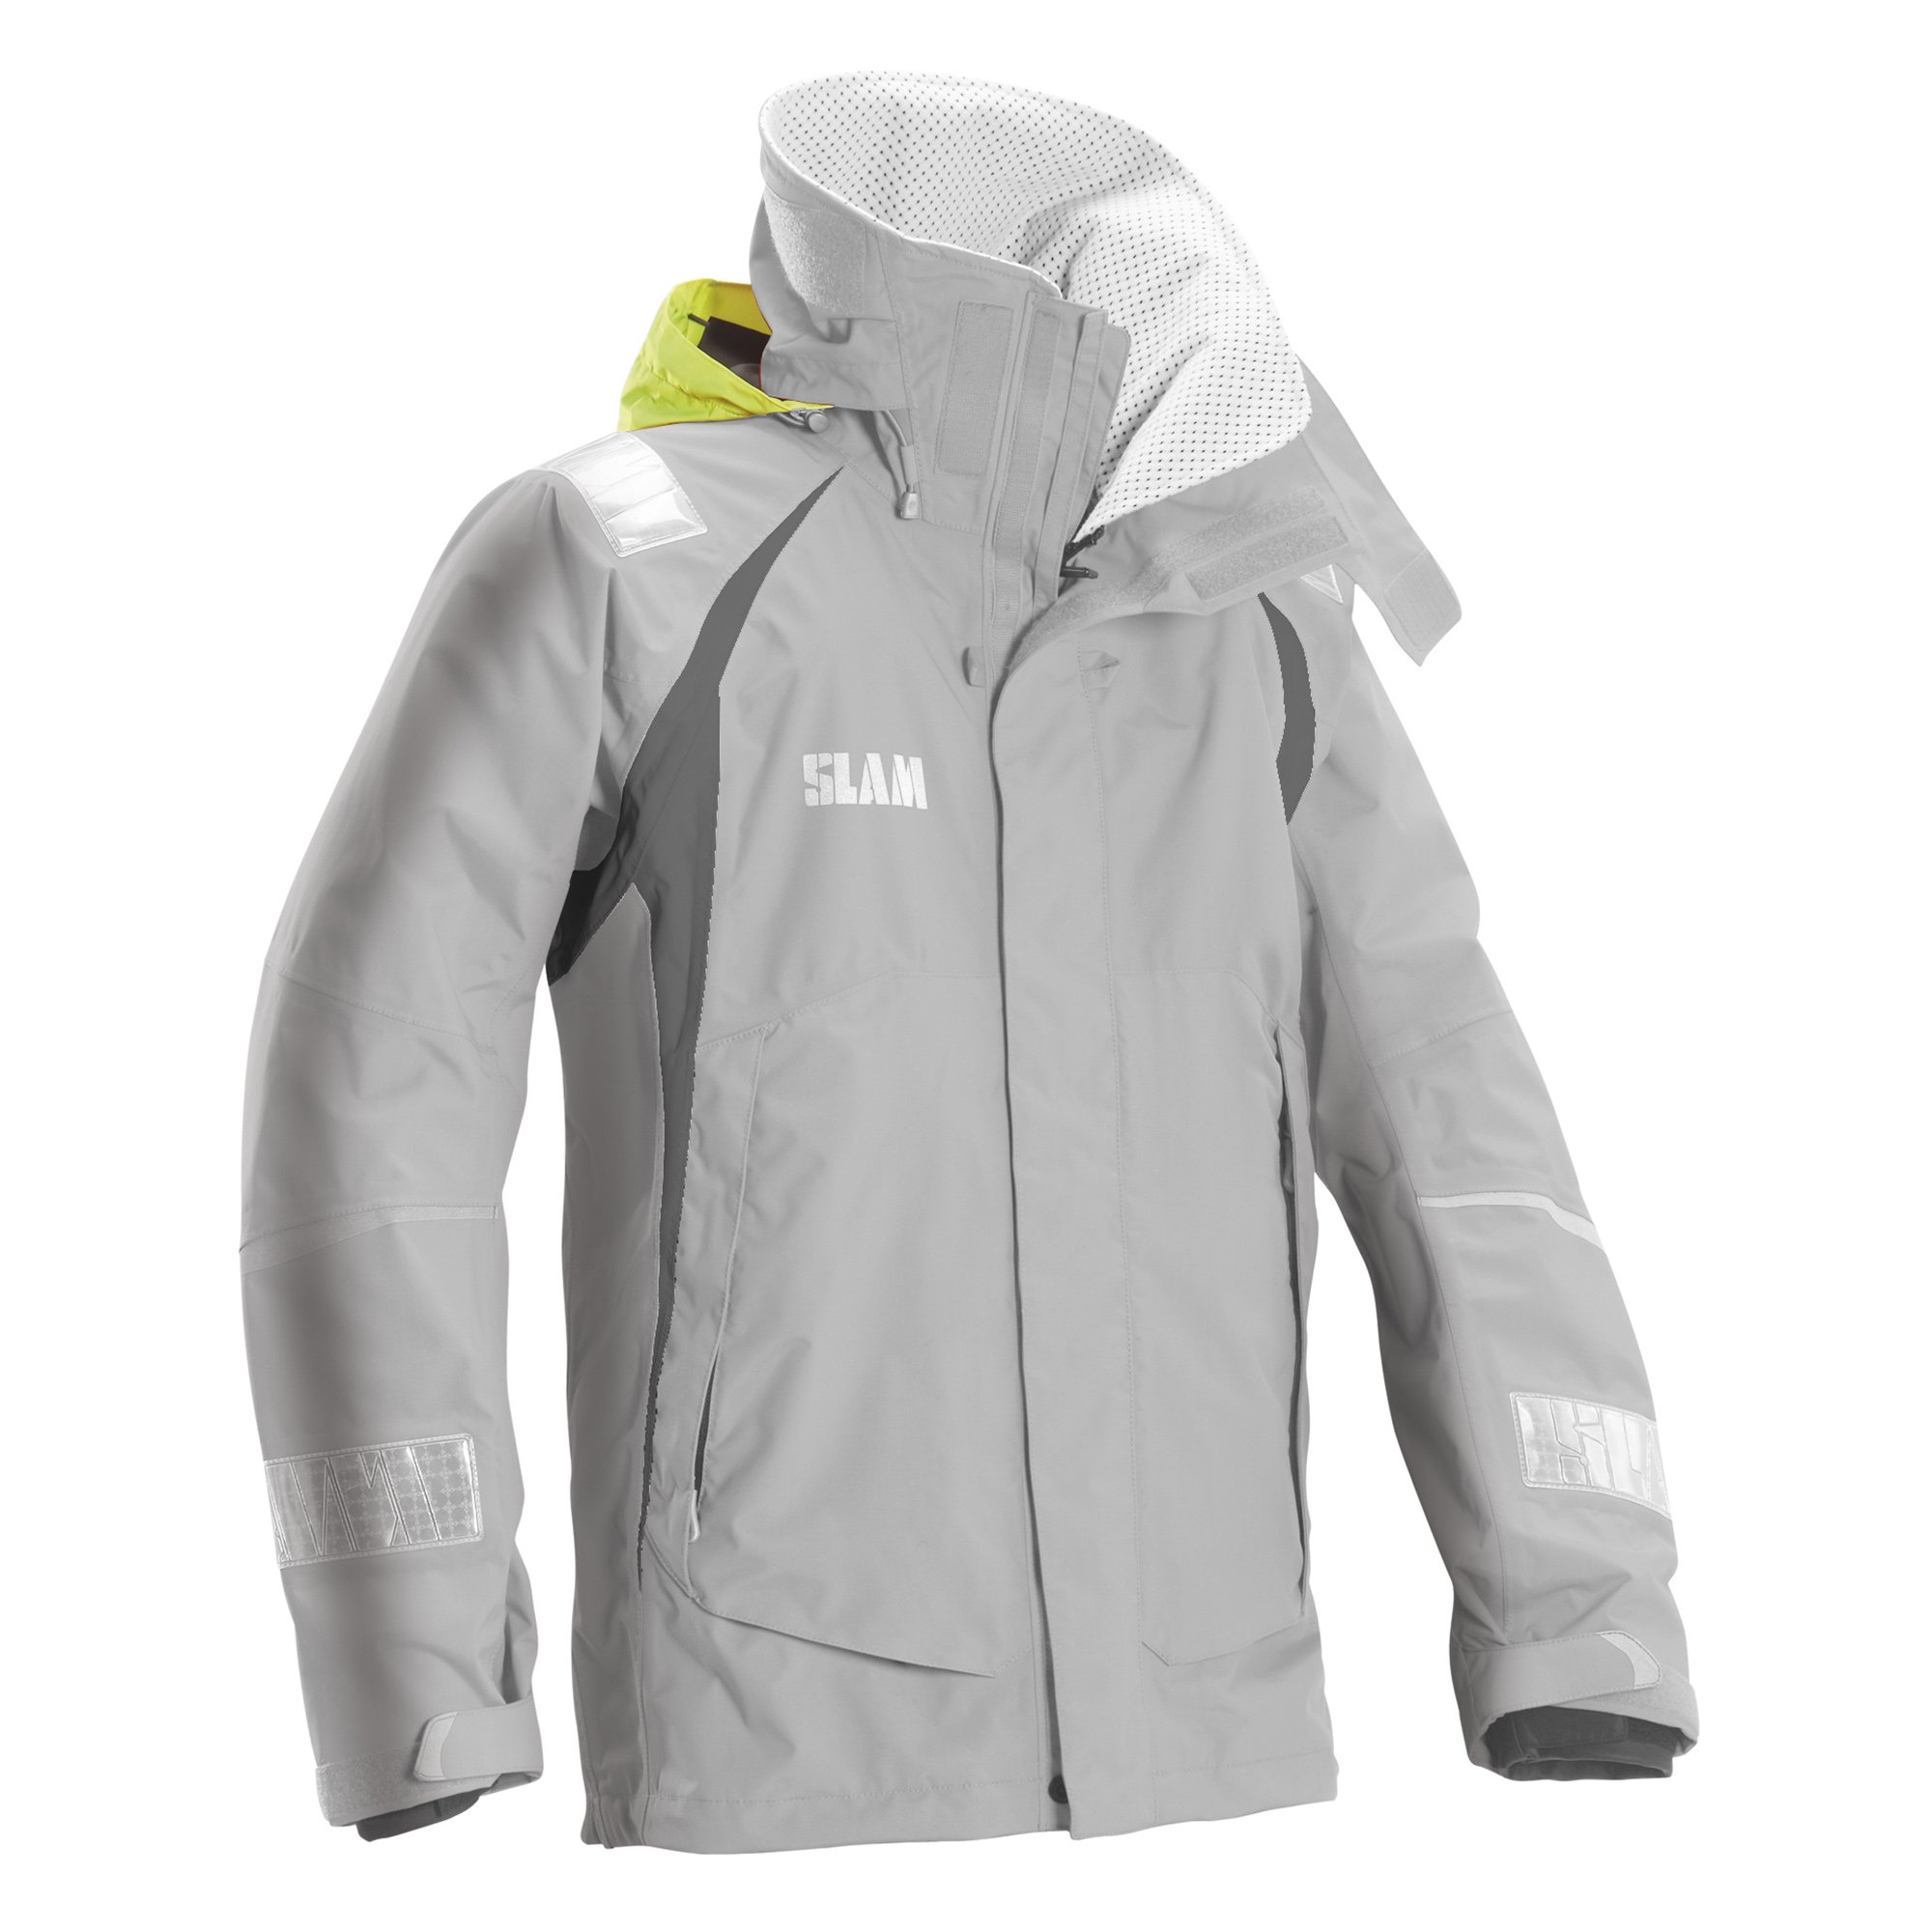 Slam Man Technical Collection Men's 160gr Nylon TUSSOR Force 3 Jacket Col.160 Perforated Fleece Collar Lined Light Grey Long Sleeve Jacket 2X-Large